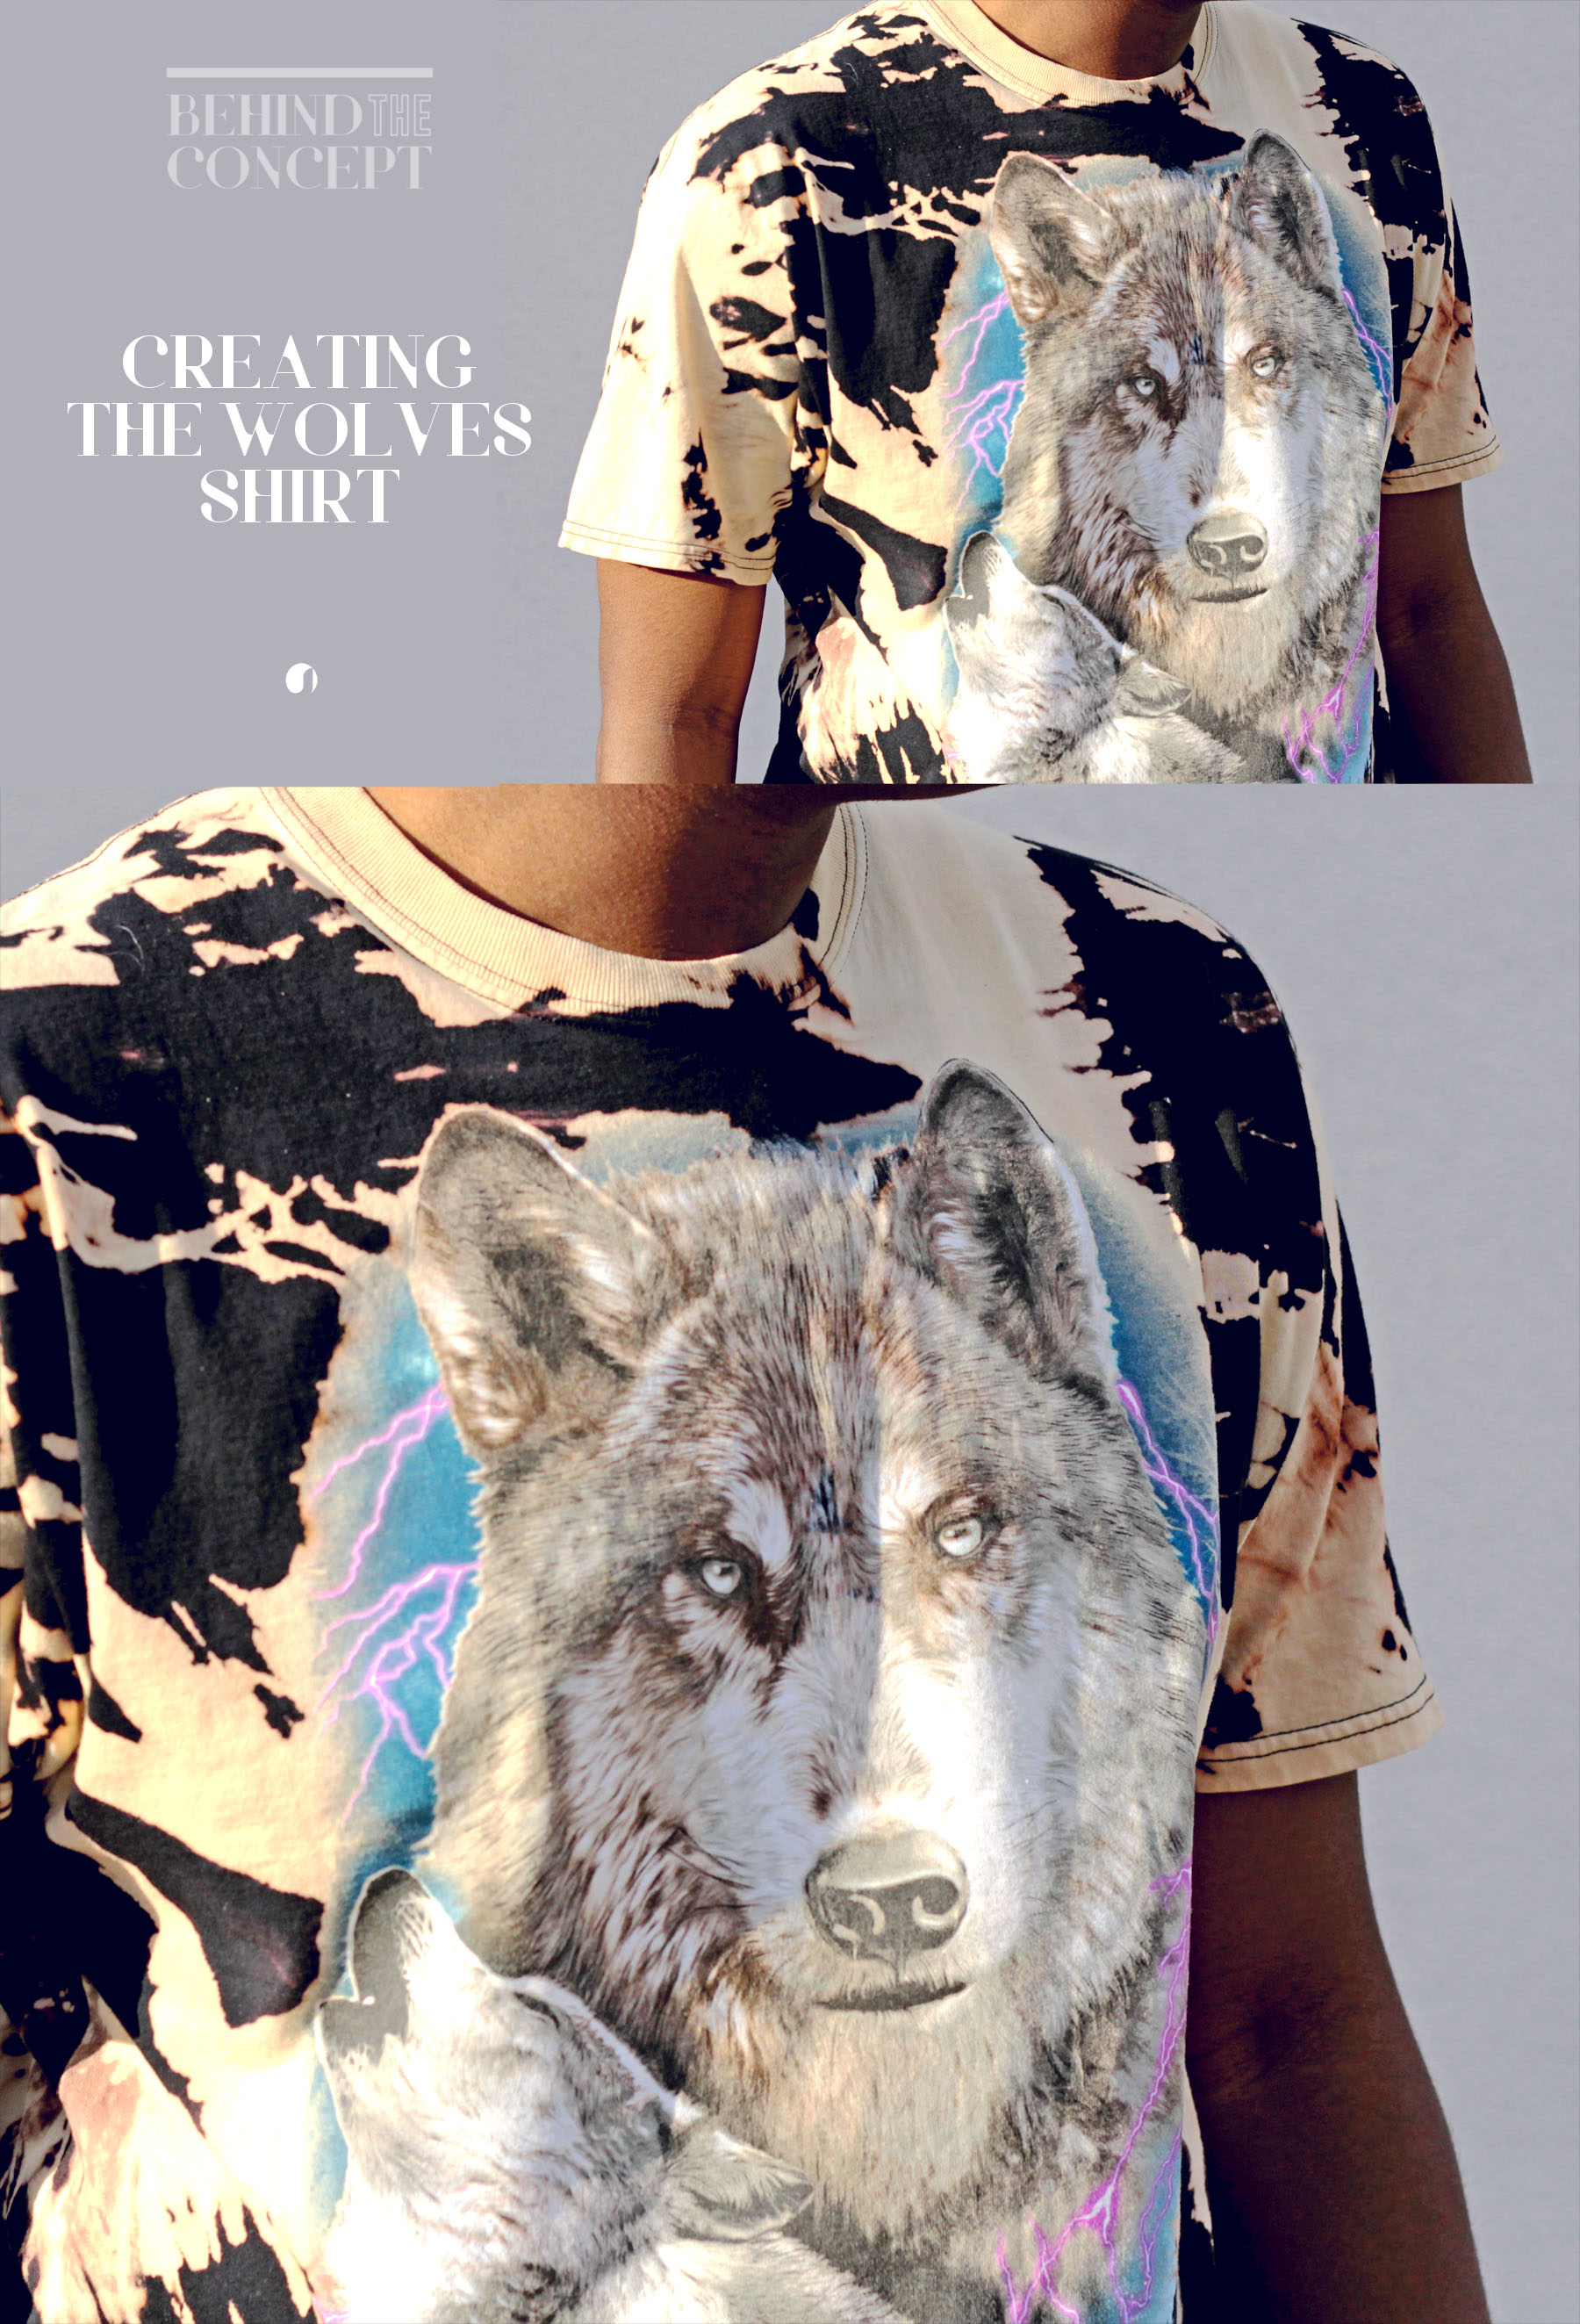 "Behind the Style Concept #64: How to Create the Bleached ""Knot-Pattern"" Wolves Tee"